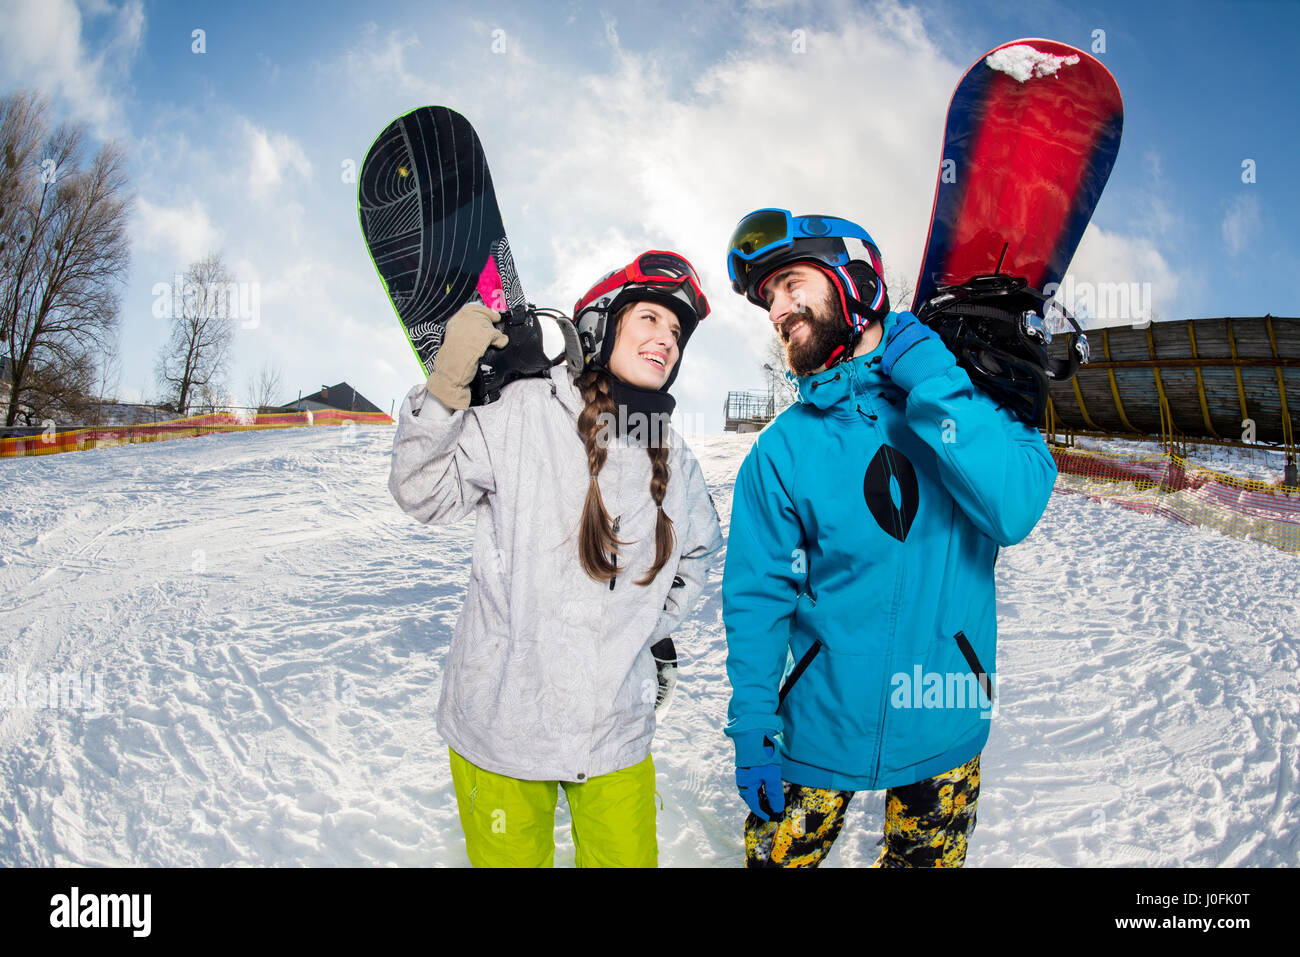 Young smiling man and woman holding snowboards and looking at each other - Stock Image